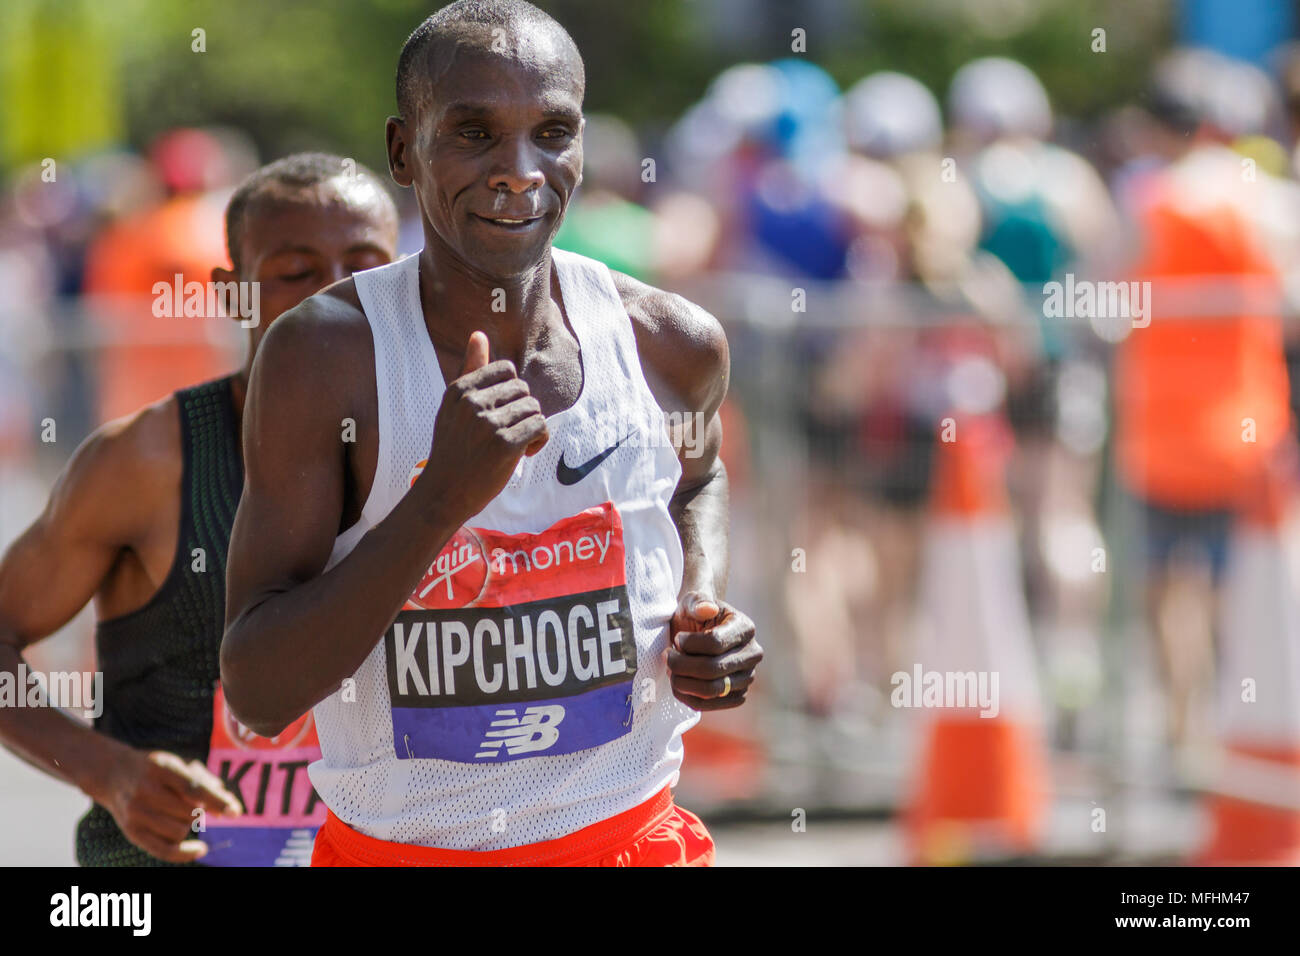 Winner of the Virgin Money London Marathon 2018. Eluid Kipchoge followed by second place finisher. Stock Photo